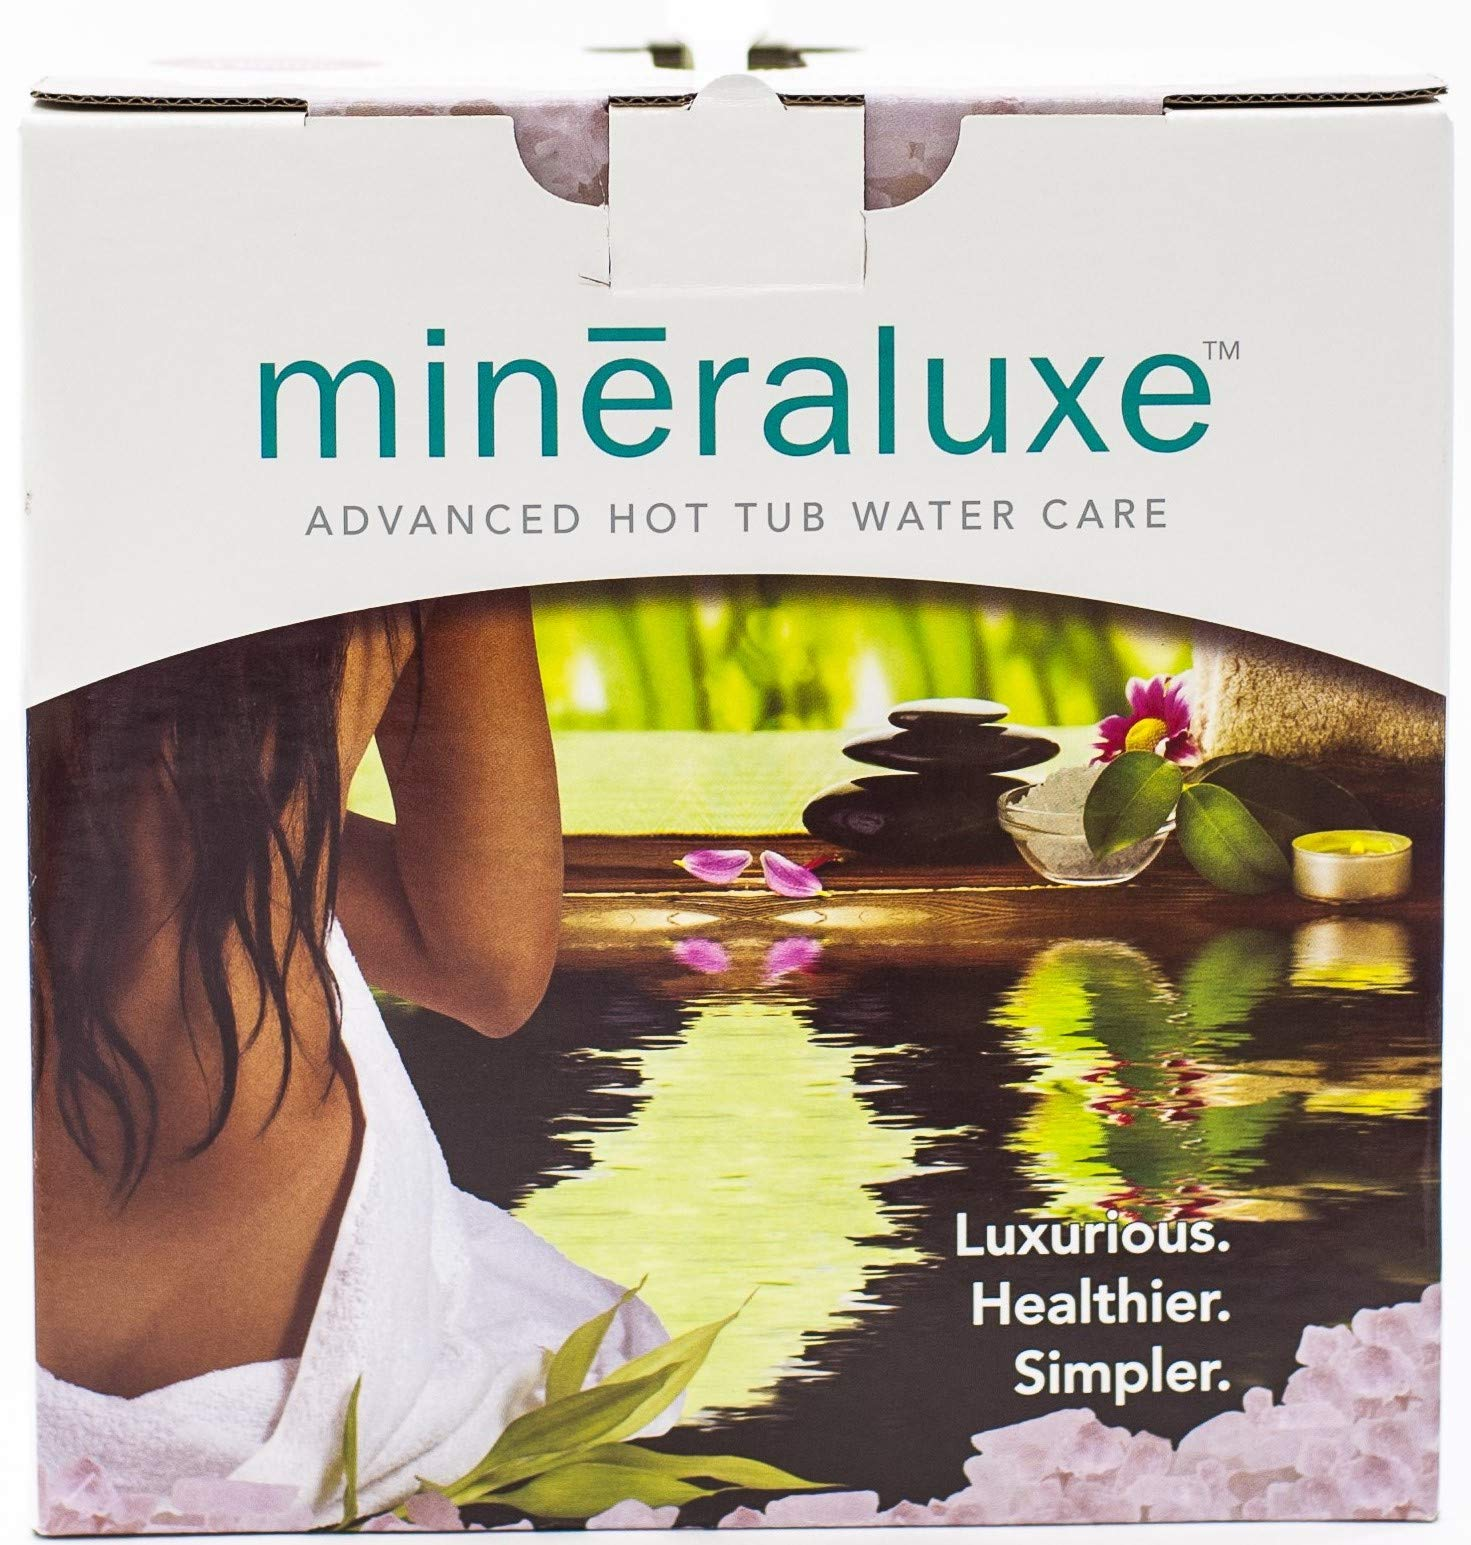 Mineraluxe Dazzle Weekly Spa and Hot Tub Care System with Bromine: 3 Month Kit by Mineraluxe